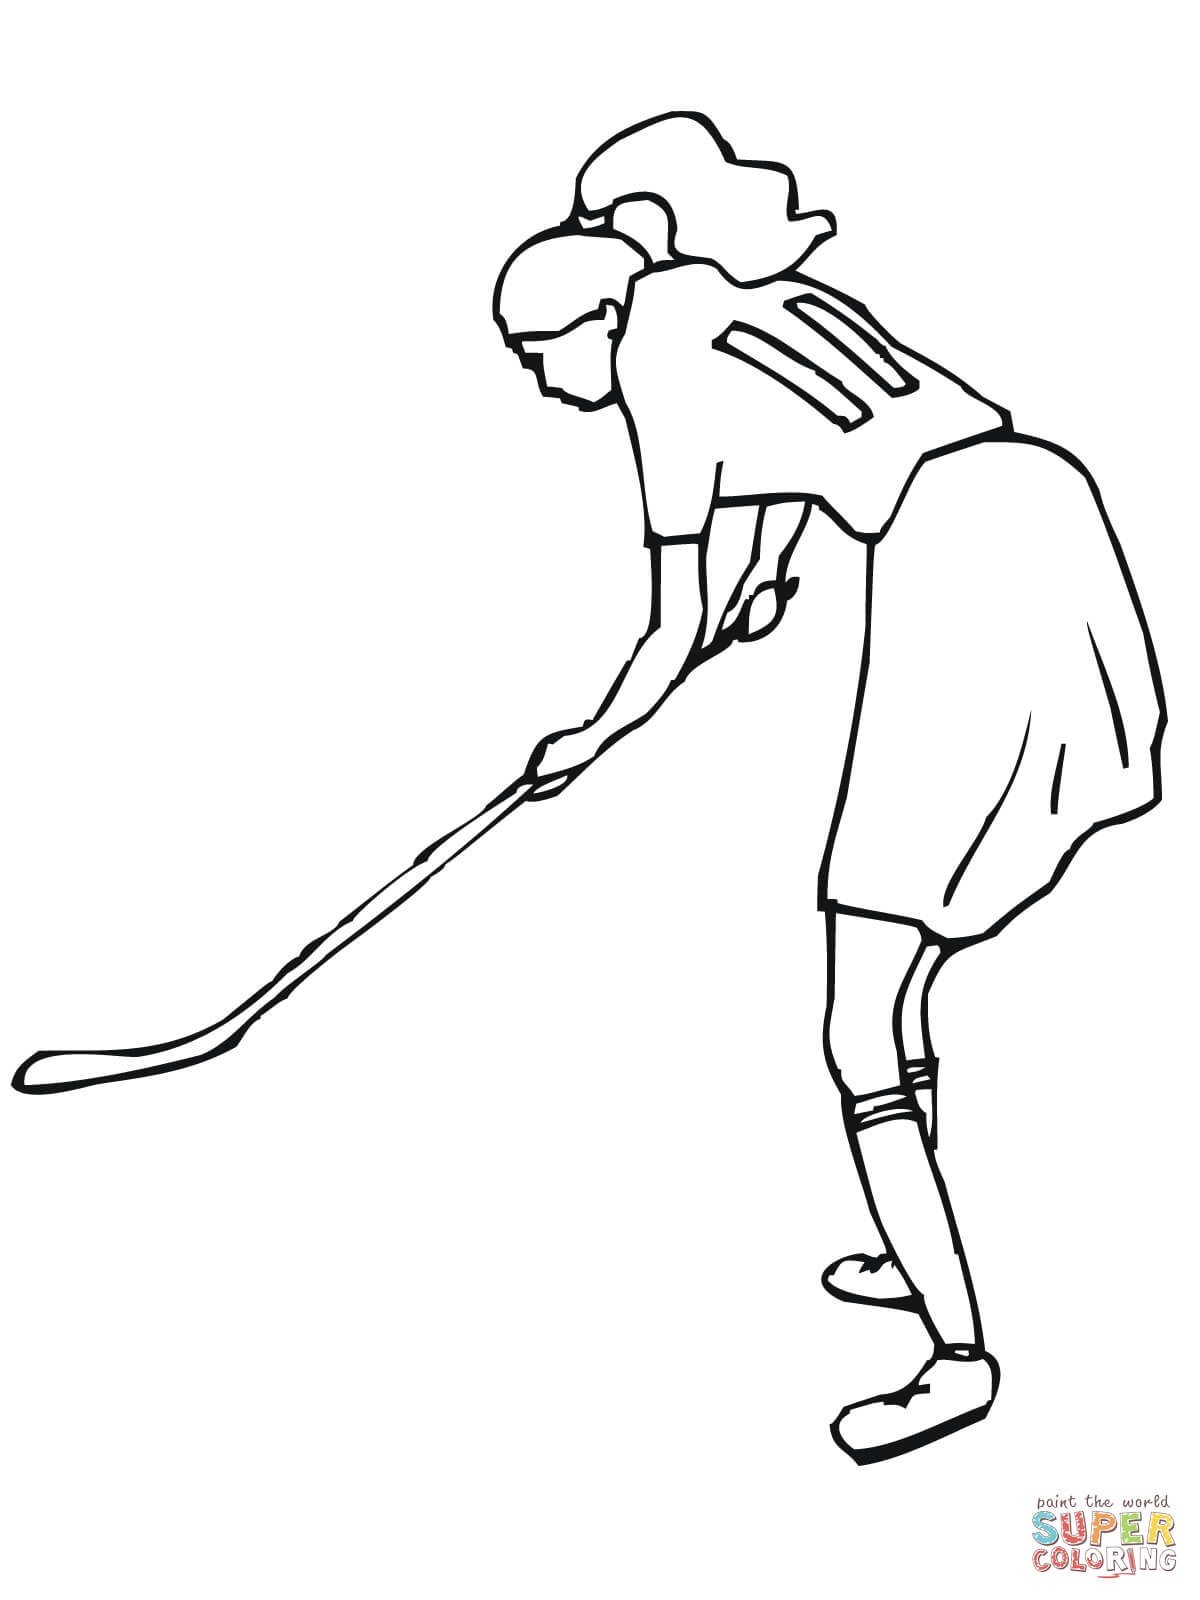 field hockey stick drawing at getdrawings free